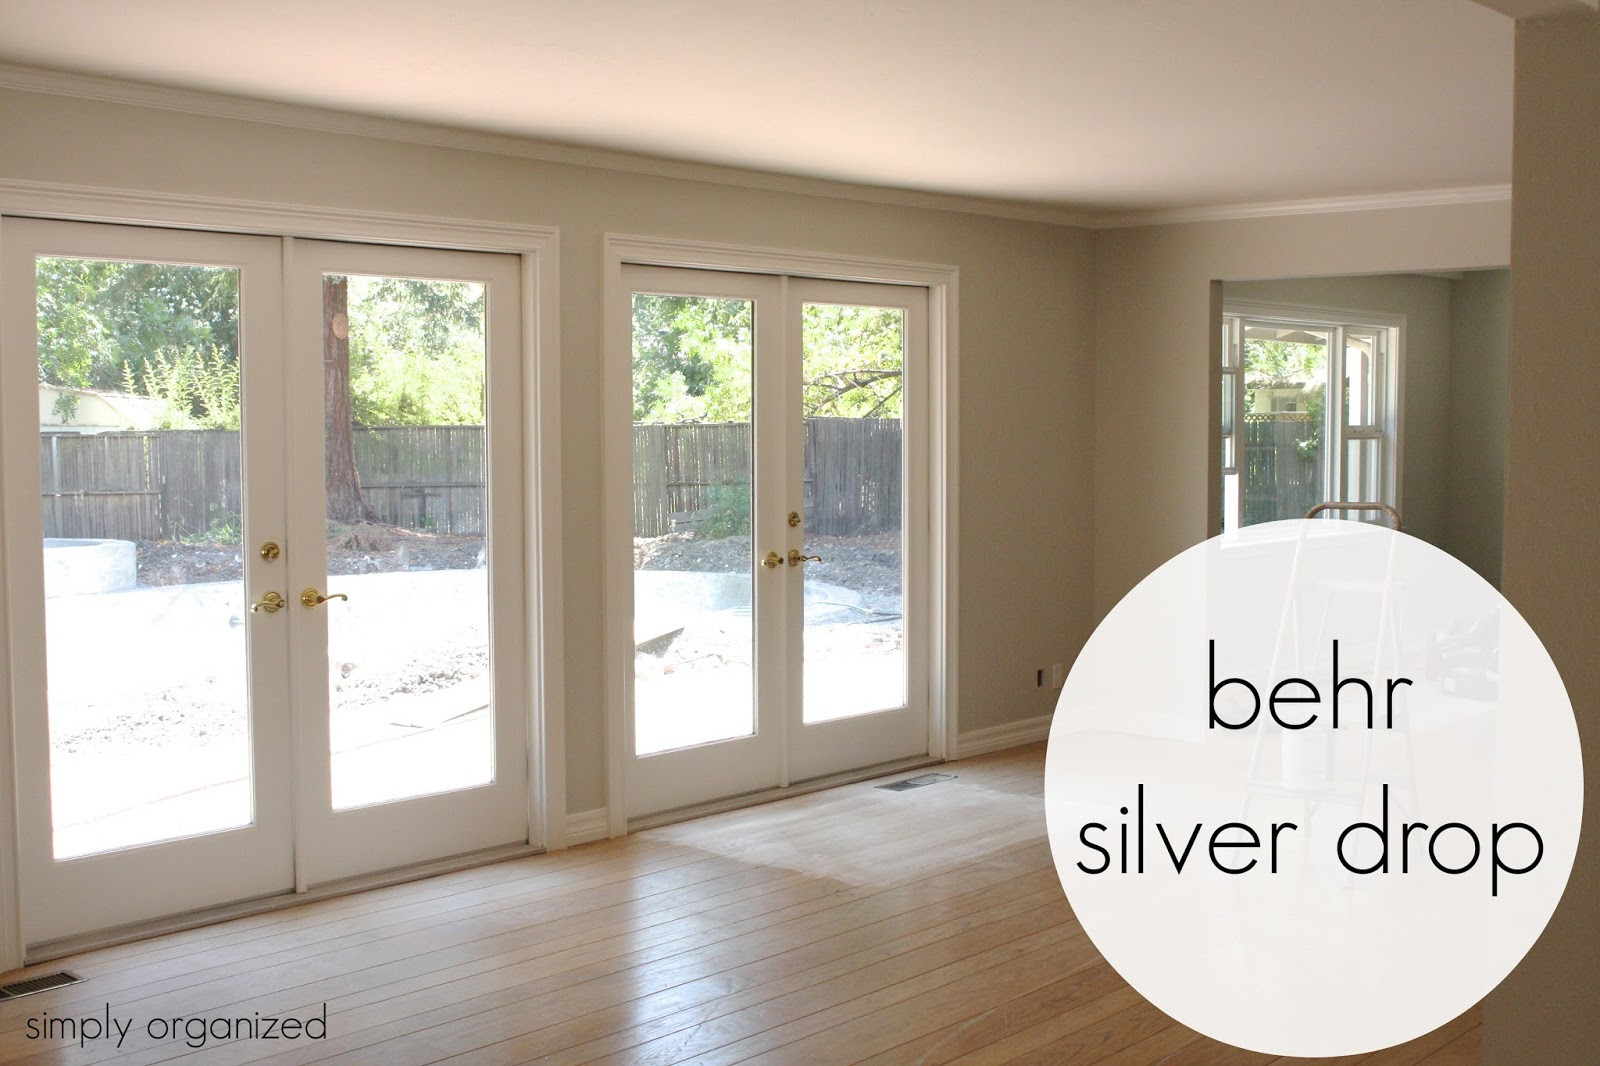 Best ideas about Behr Interior Paint Colors . Save or Pin My Home Interior Paint color palate simply organized Now.